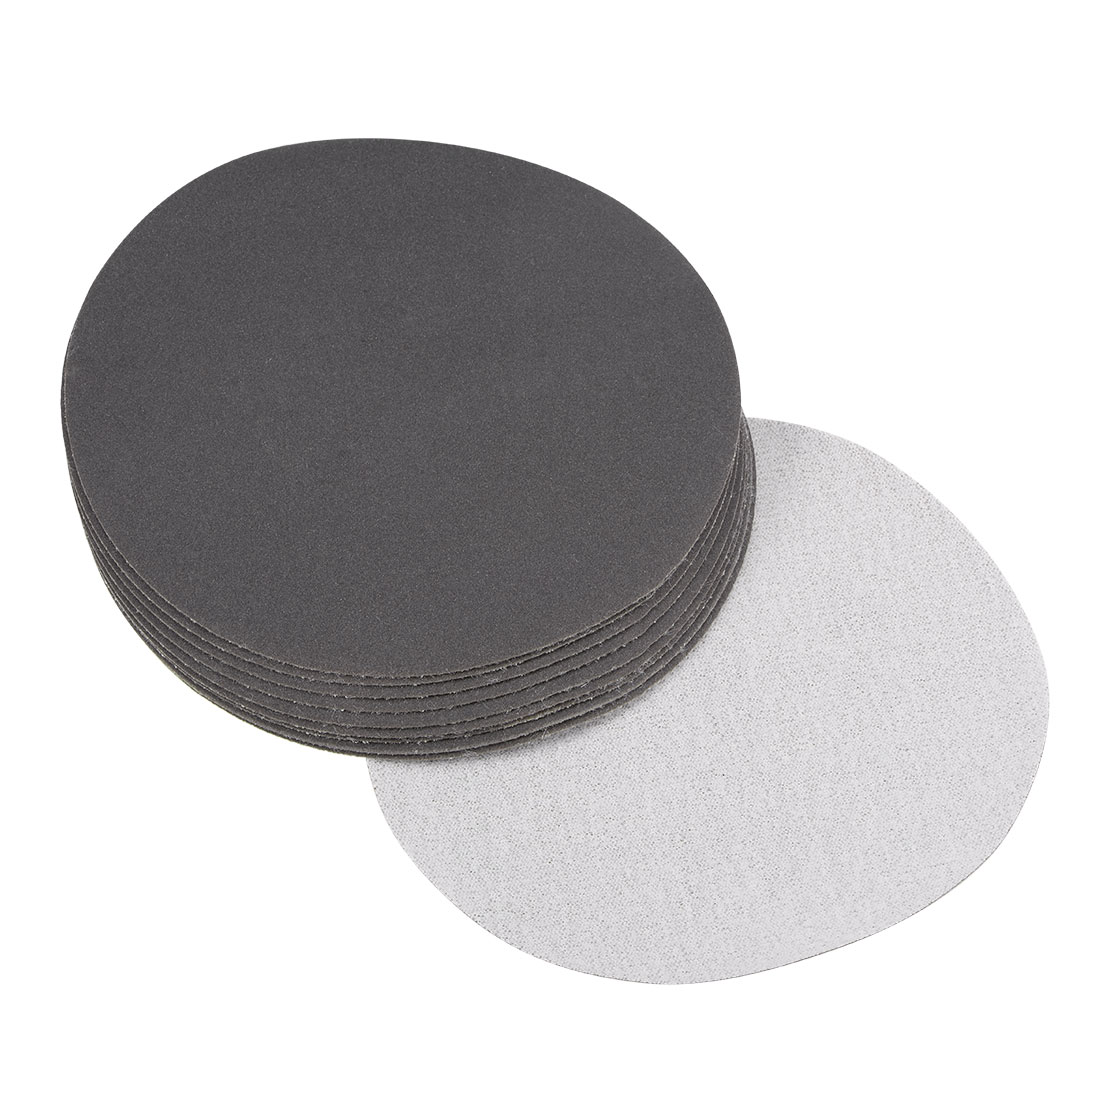 5 inch Wet Dry Discs 400 Grit Hook and Loop Sanding Disc Silicon Carbide 10pcs